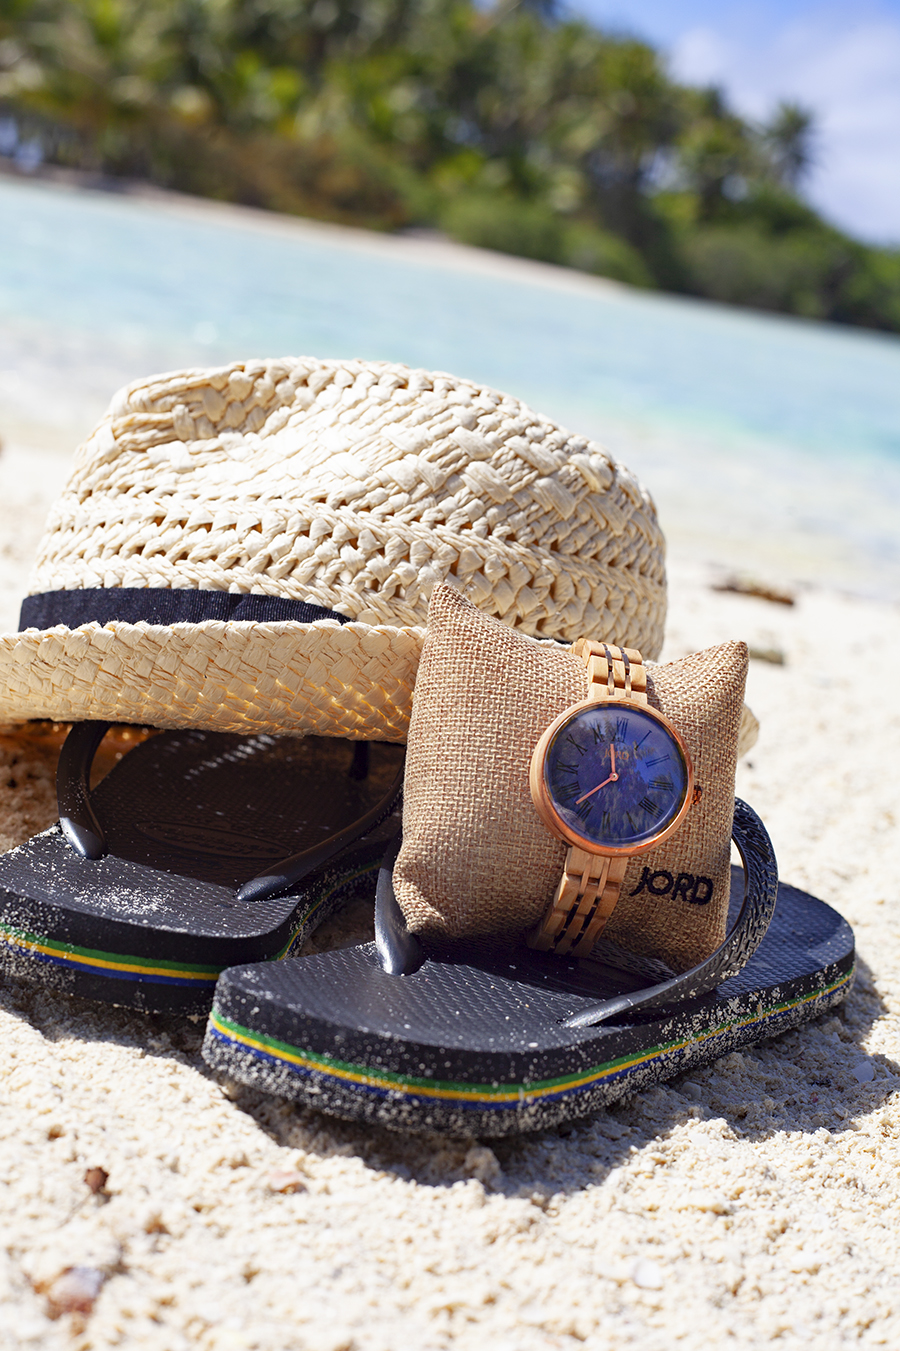 Trends This Summer: Unique Wooden Watches by JORD